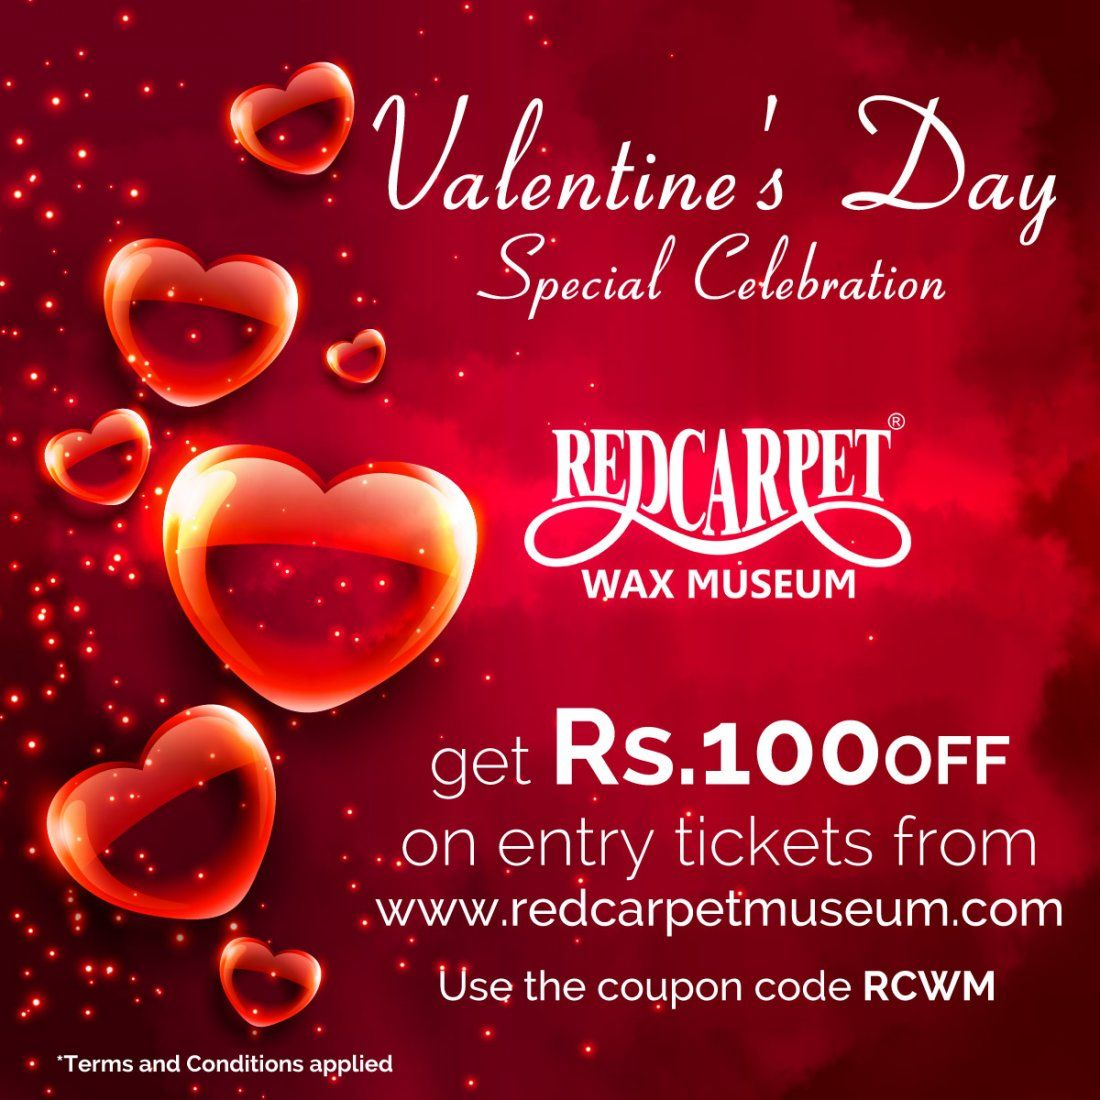 Valentines Day Special Celebration at Red Carpet Wax Museum Mumbai